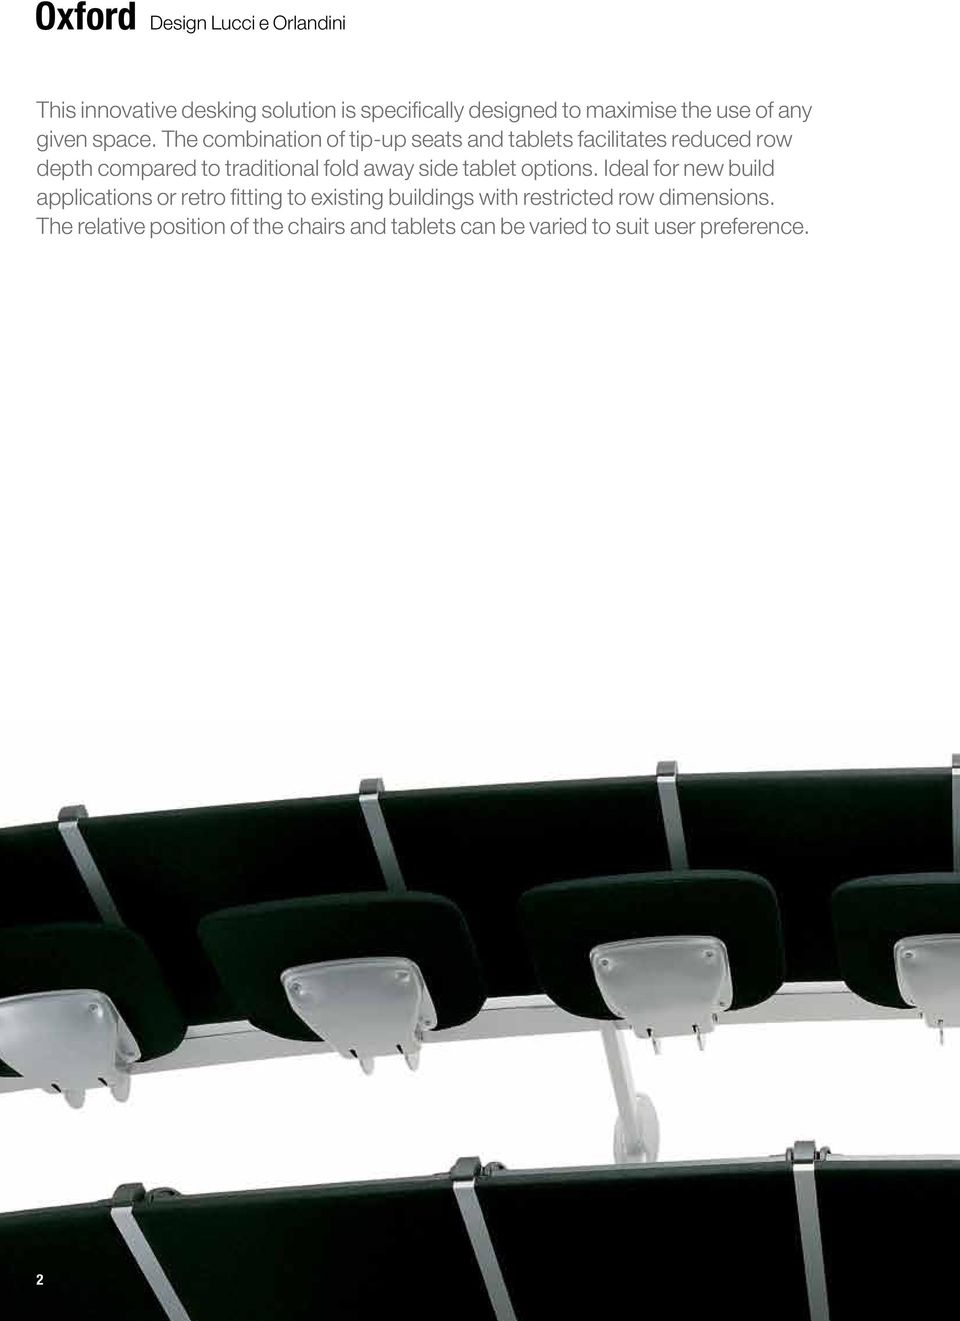 The combination of tip-up seats and tablets facilitates reduced row depth compared to traditional fold away side